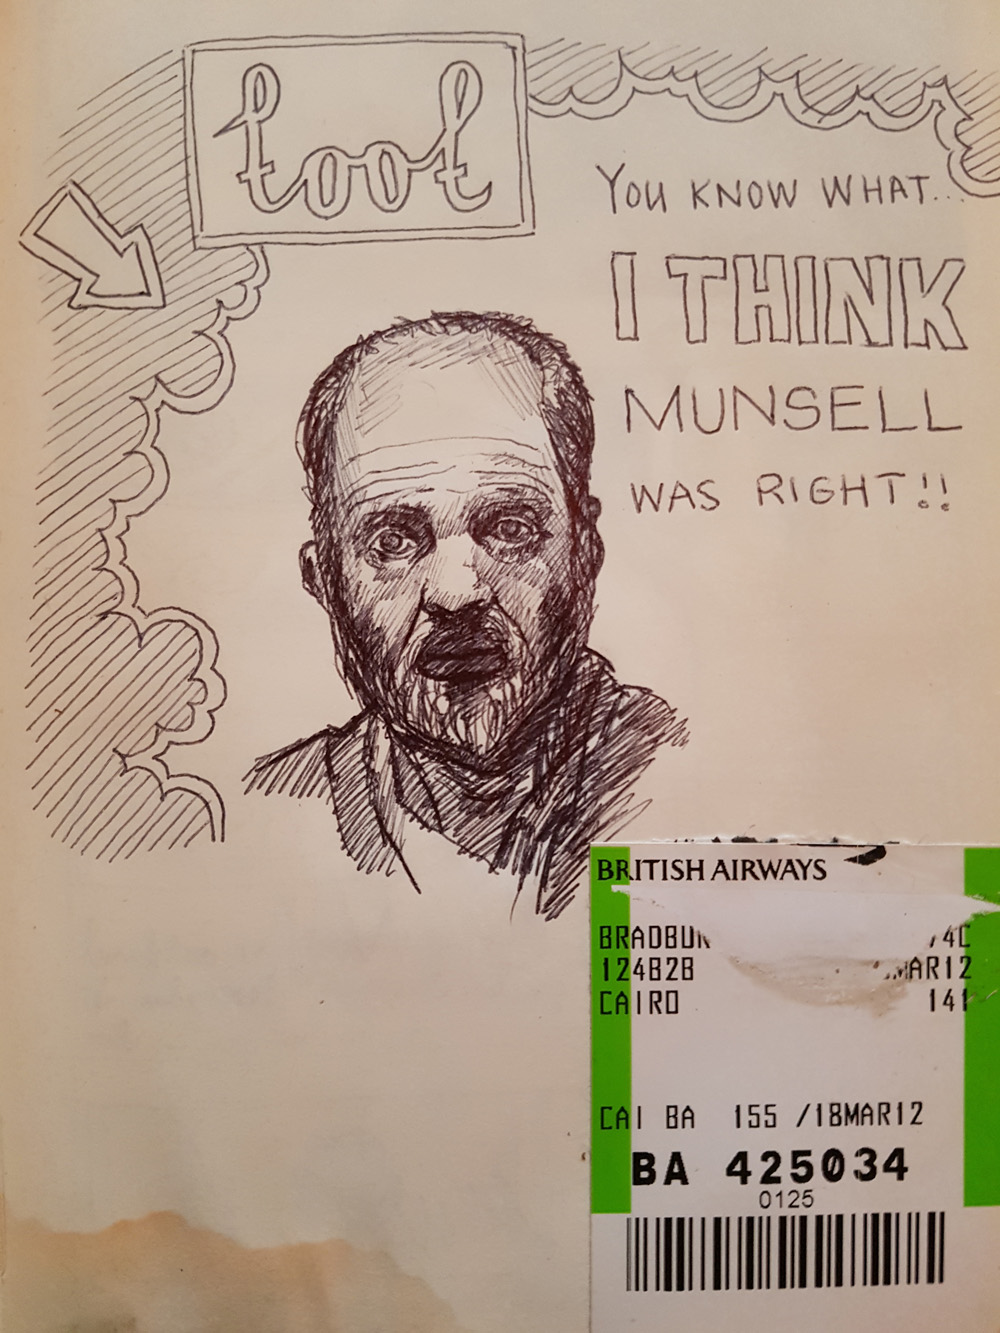 munsell-was-right